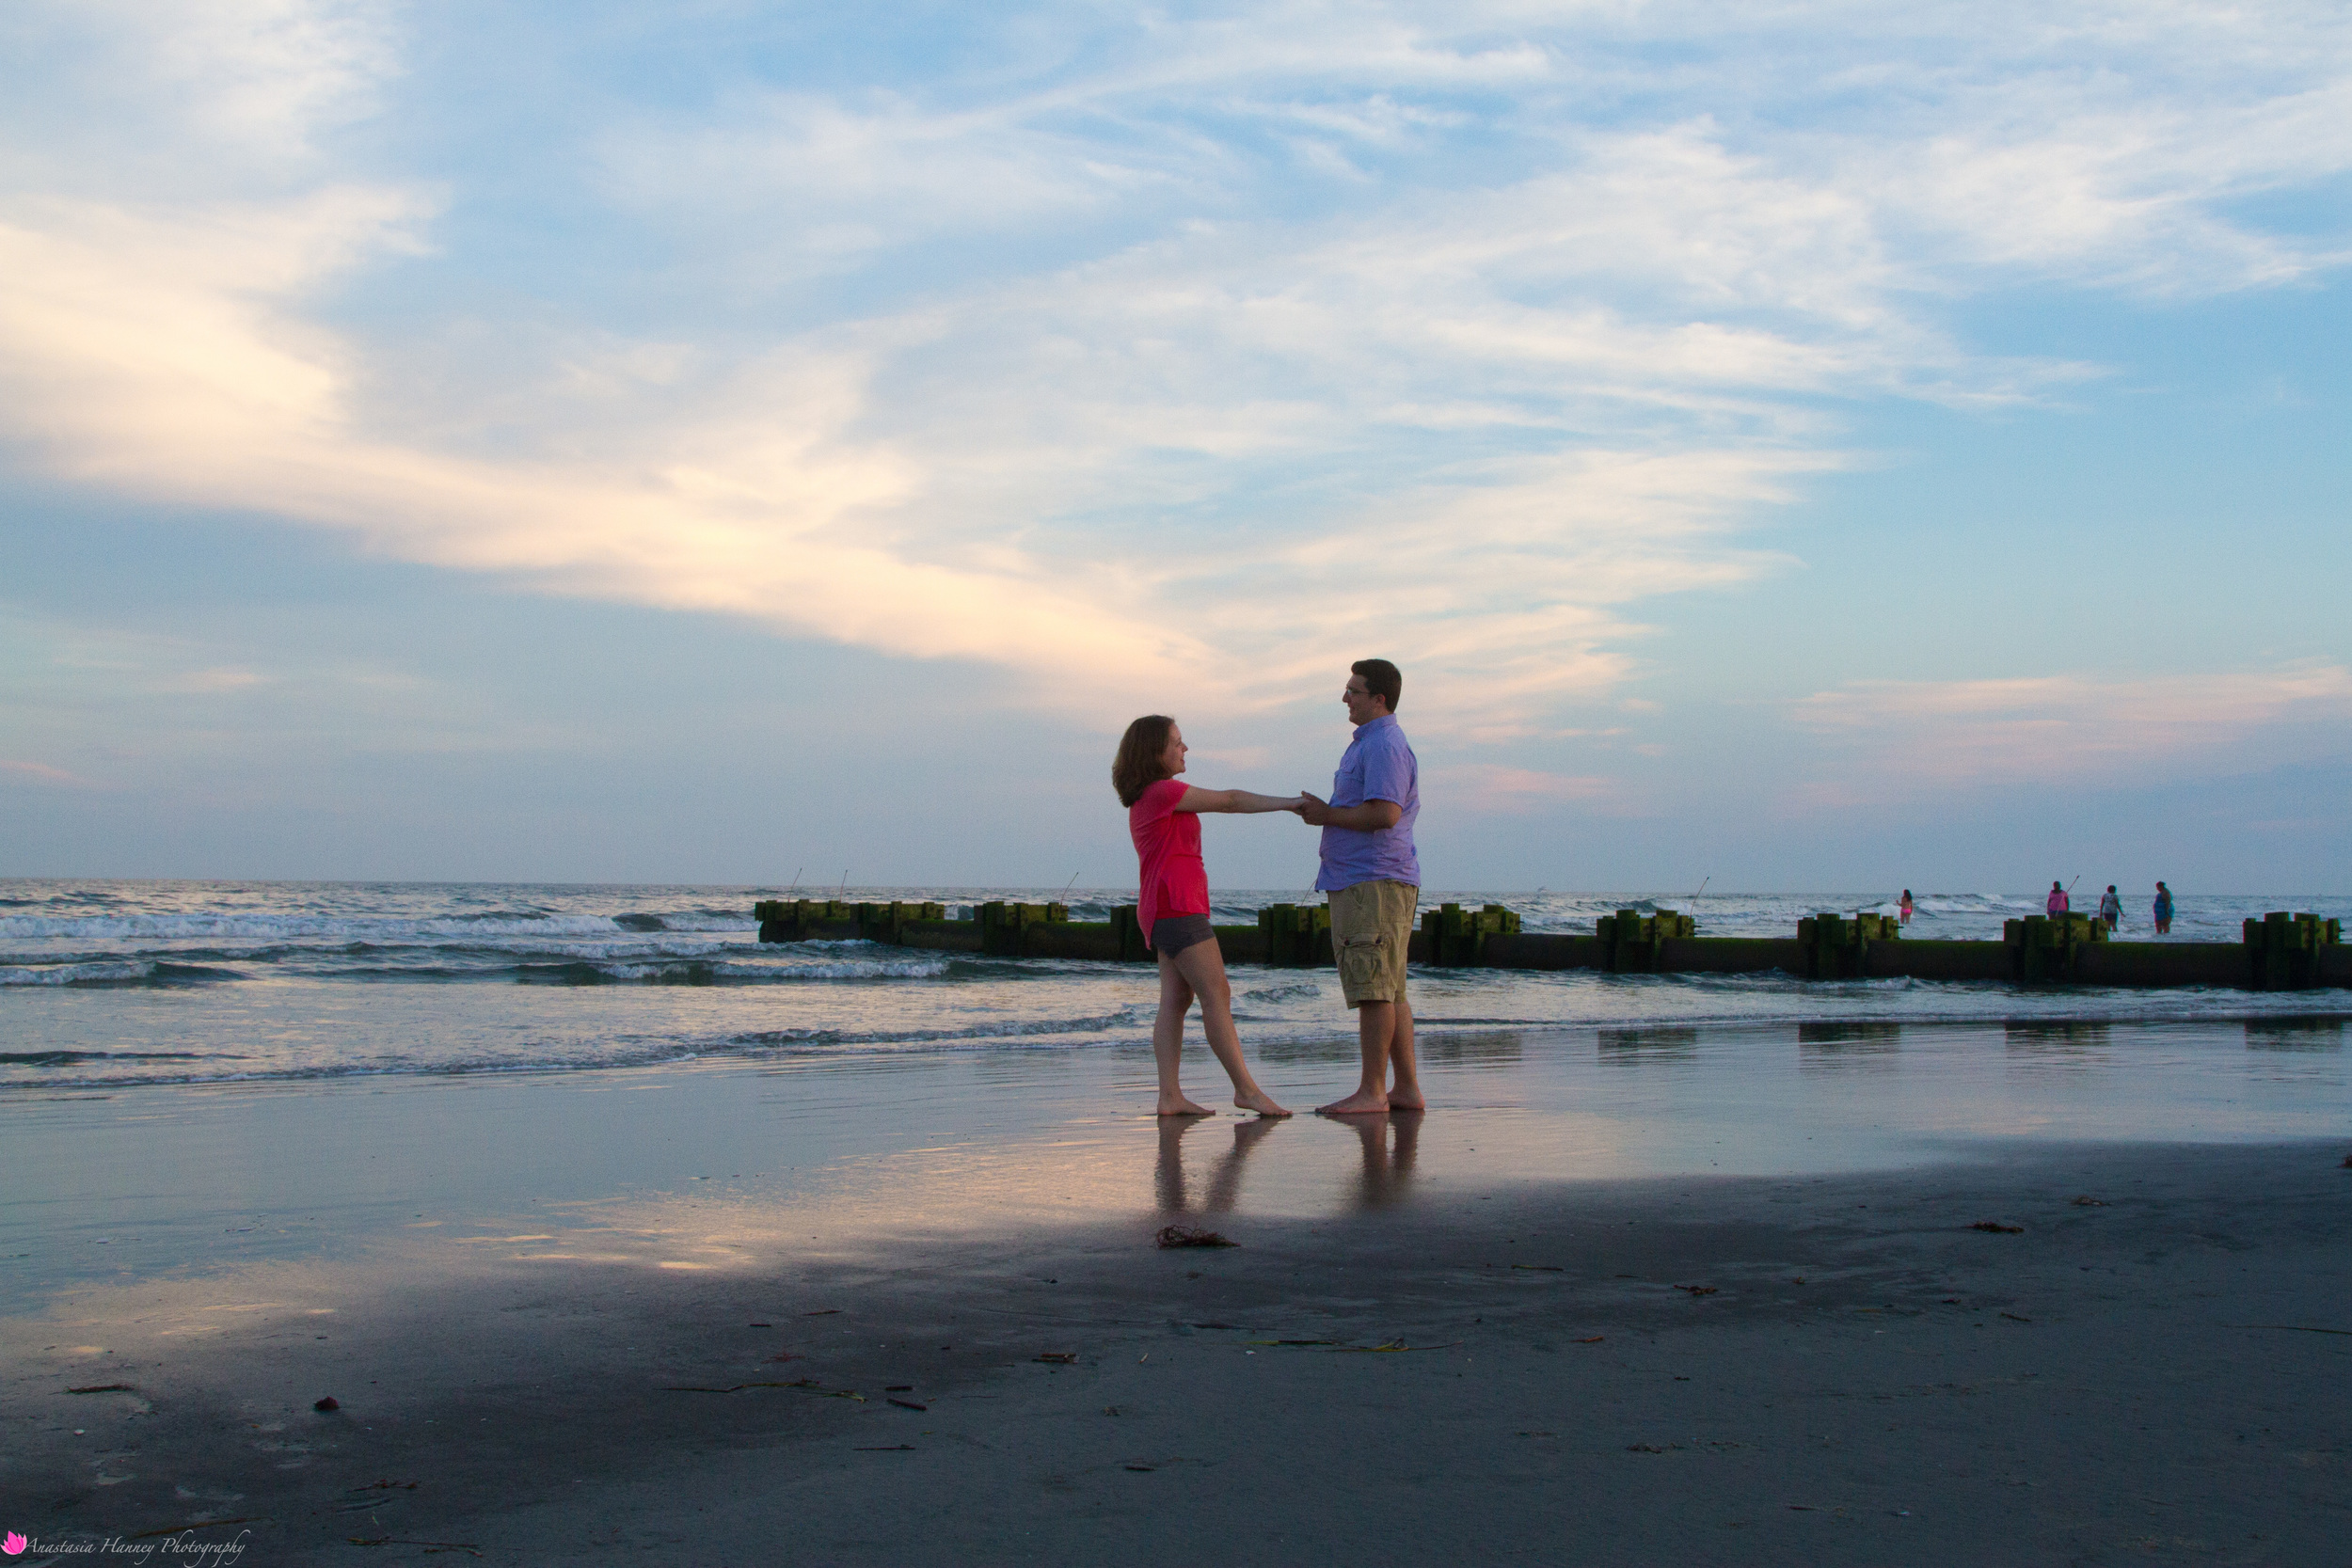 Engagement Photographer Proposal on the Wildwood New Jersey Beach Reflective Water at Sunset She Said Yes